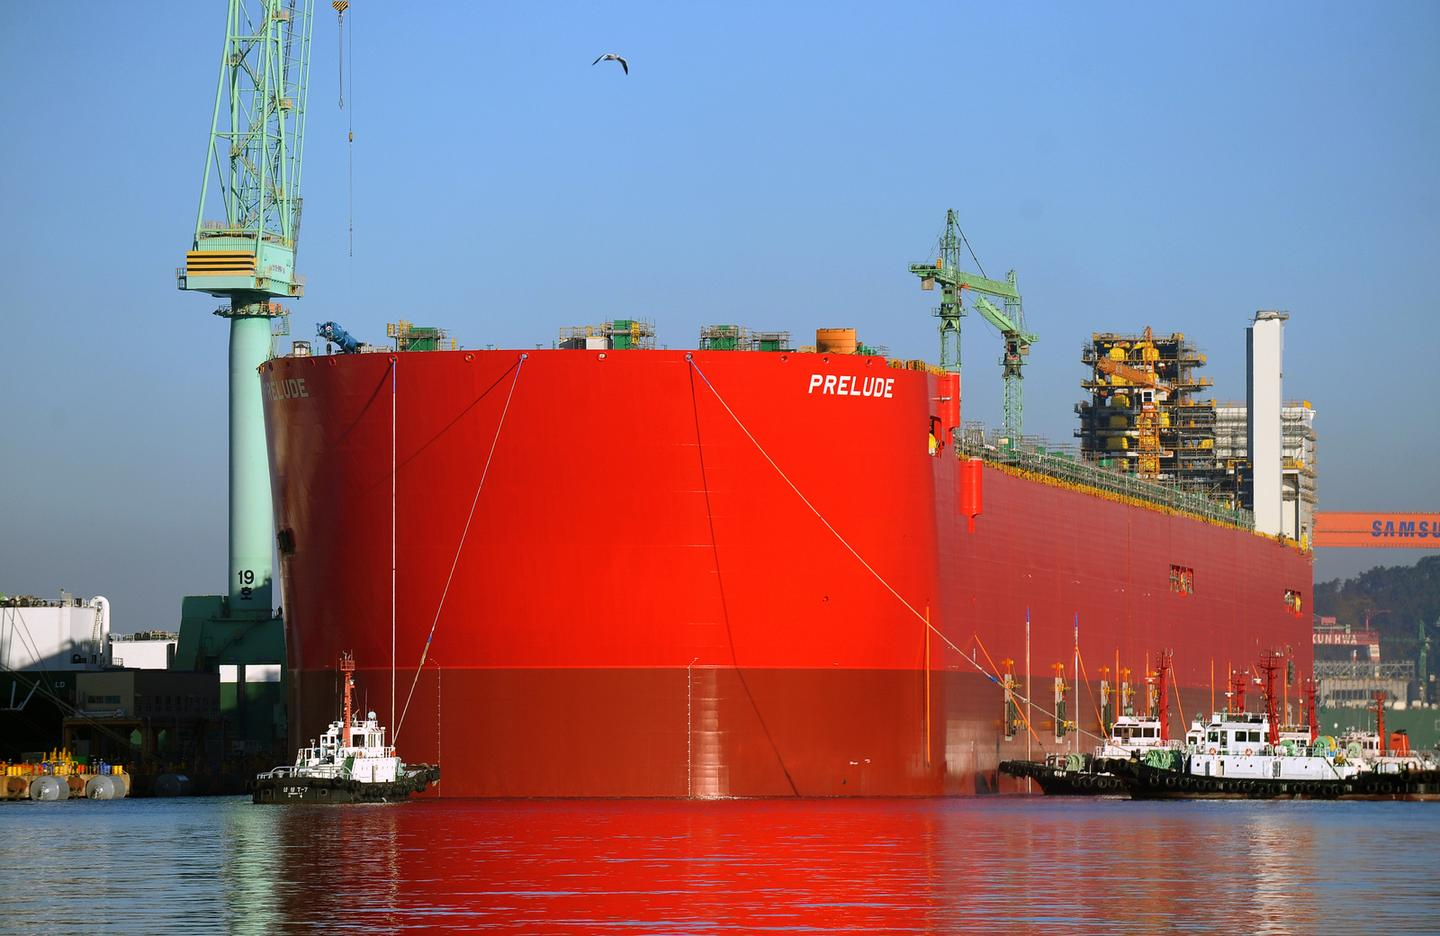 The 488-m-long hull of the Prelude FLNG is floated for the first time